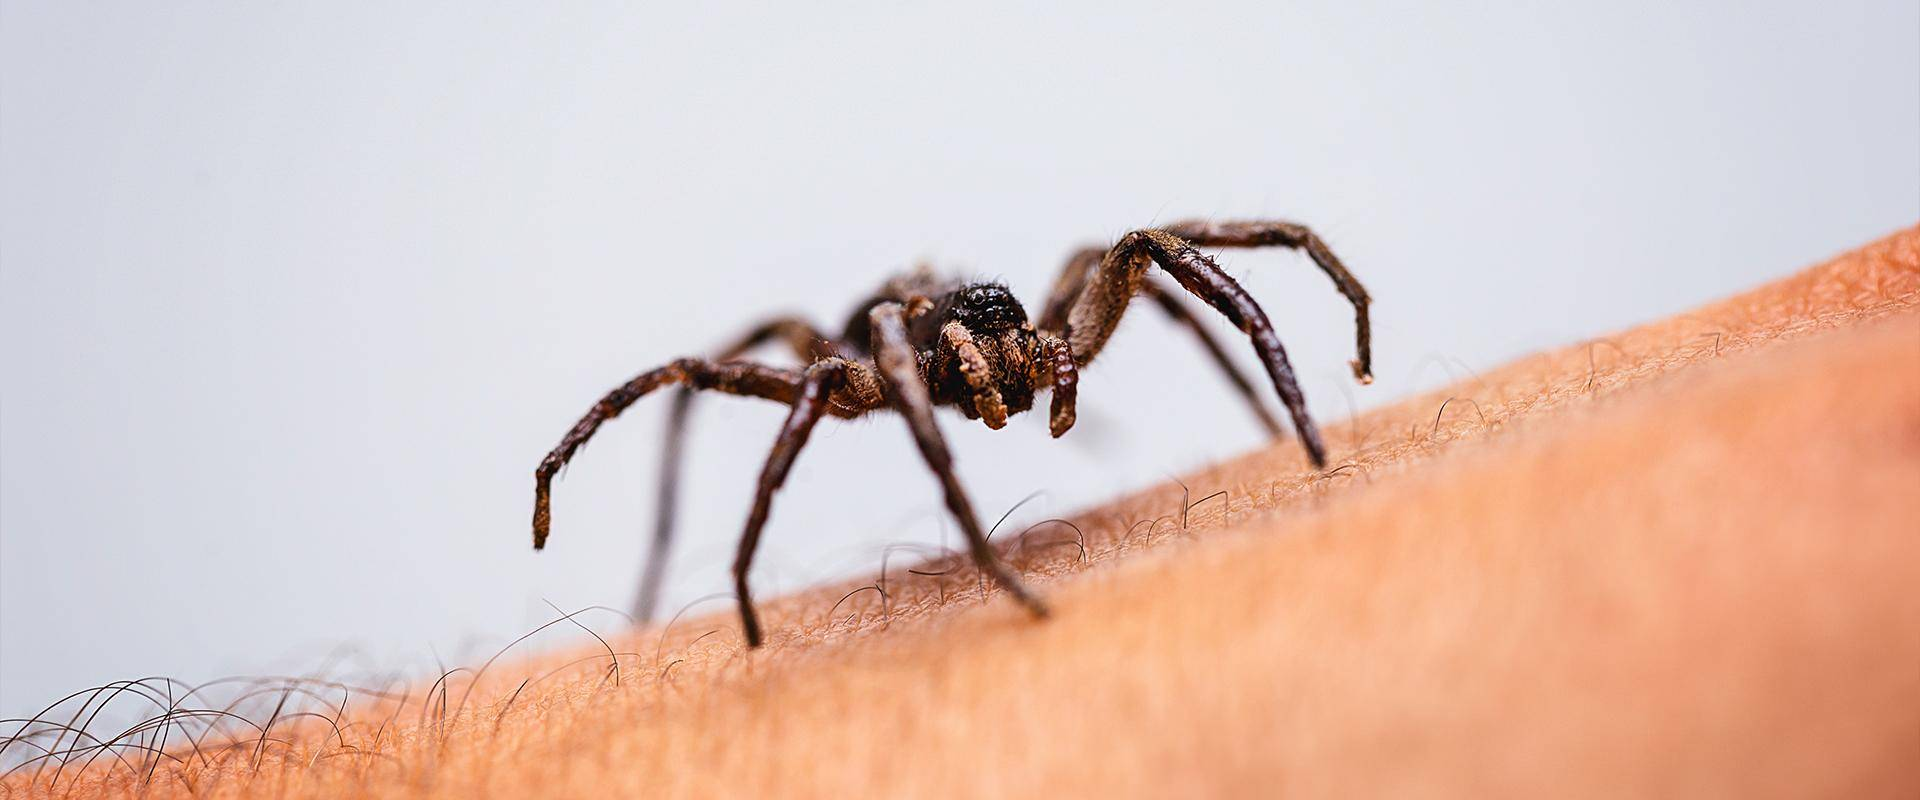 a spider on an arm